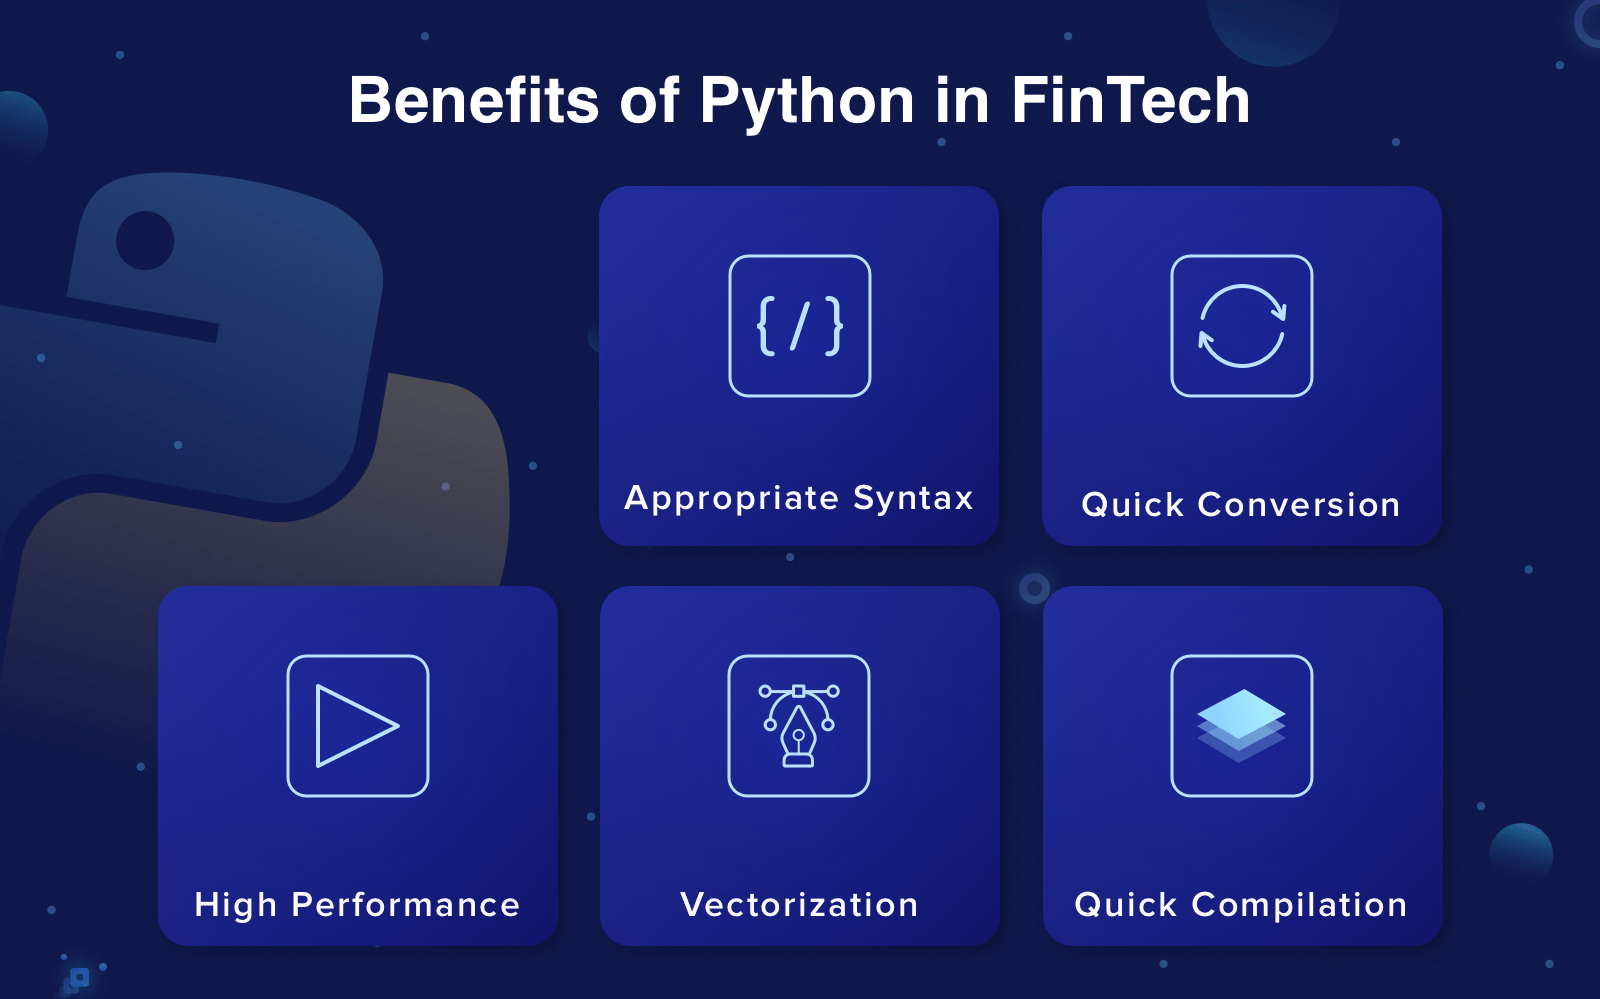 What programming language is most suitable for fintech? - Quora